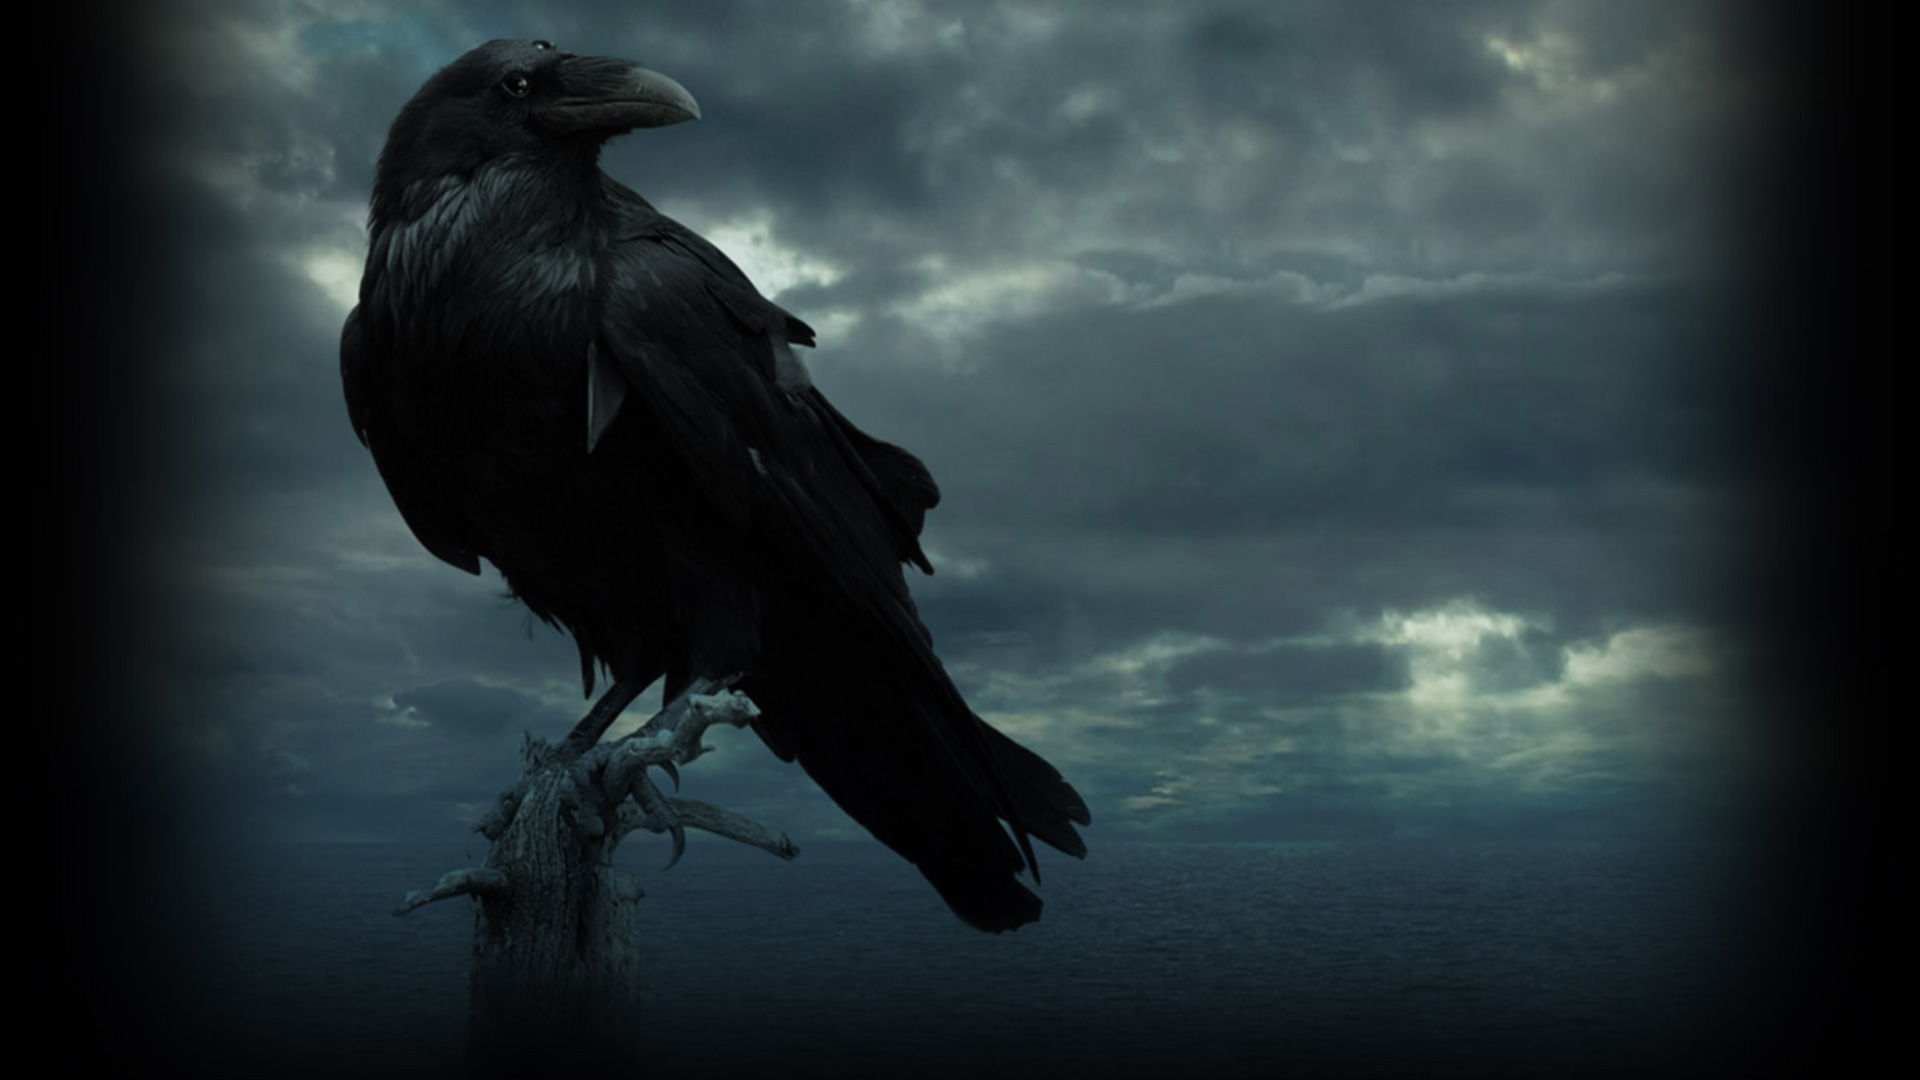 Raven Wallpapers HD Backgrounds WallpapersIn4knet 1920x1080